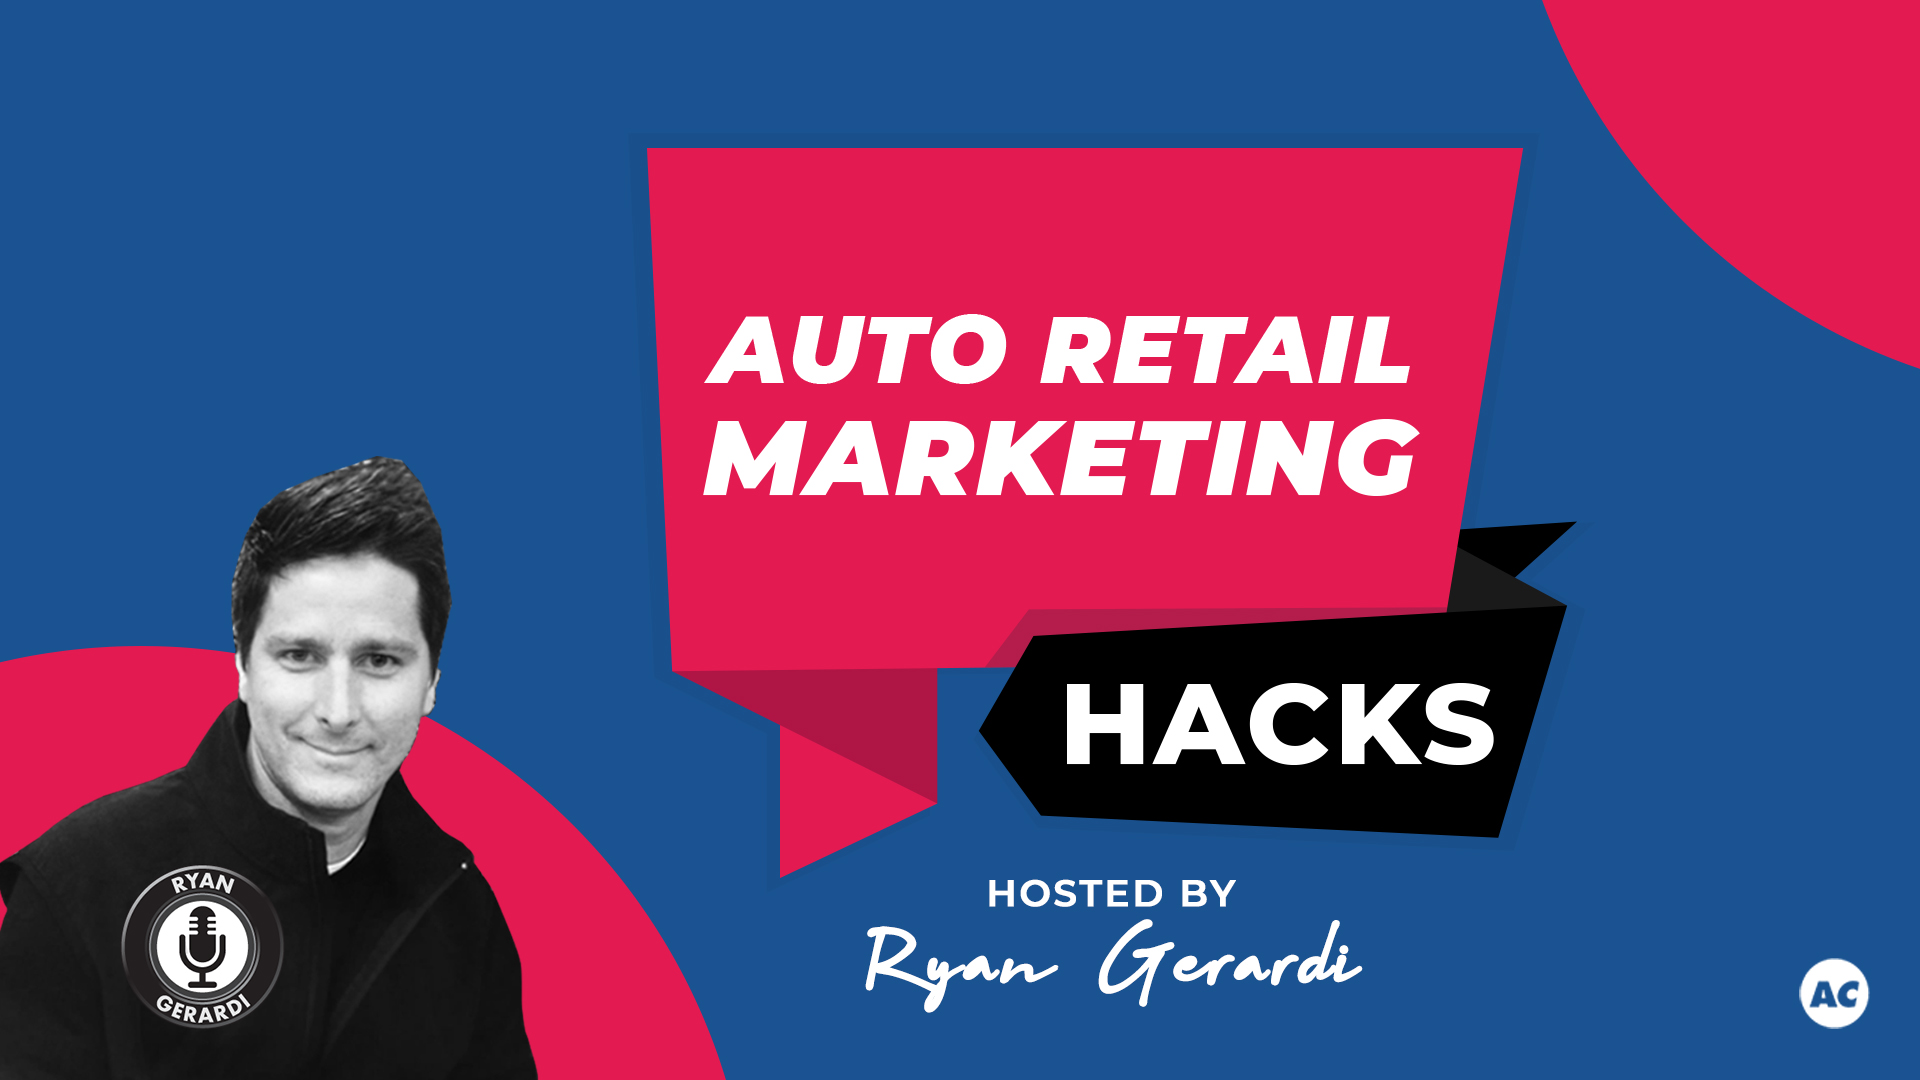 Auto Retail Marketing Hacks w/ Ryan Gerardi